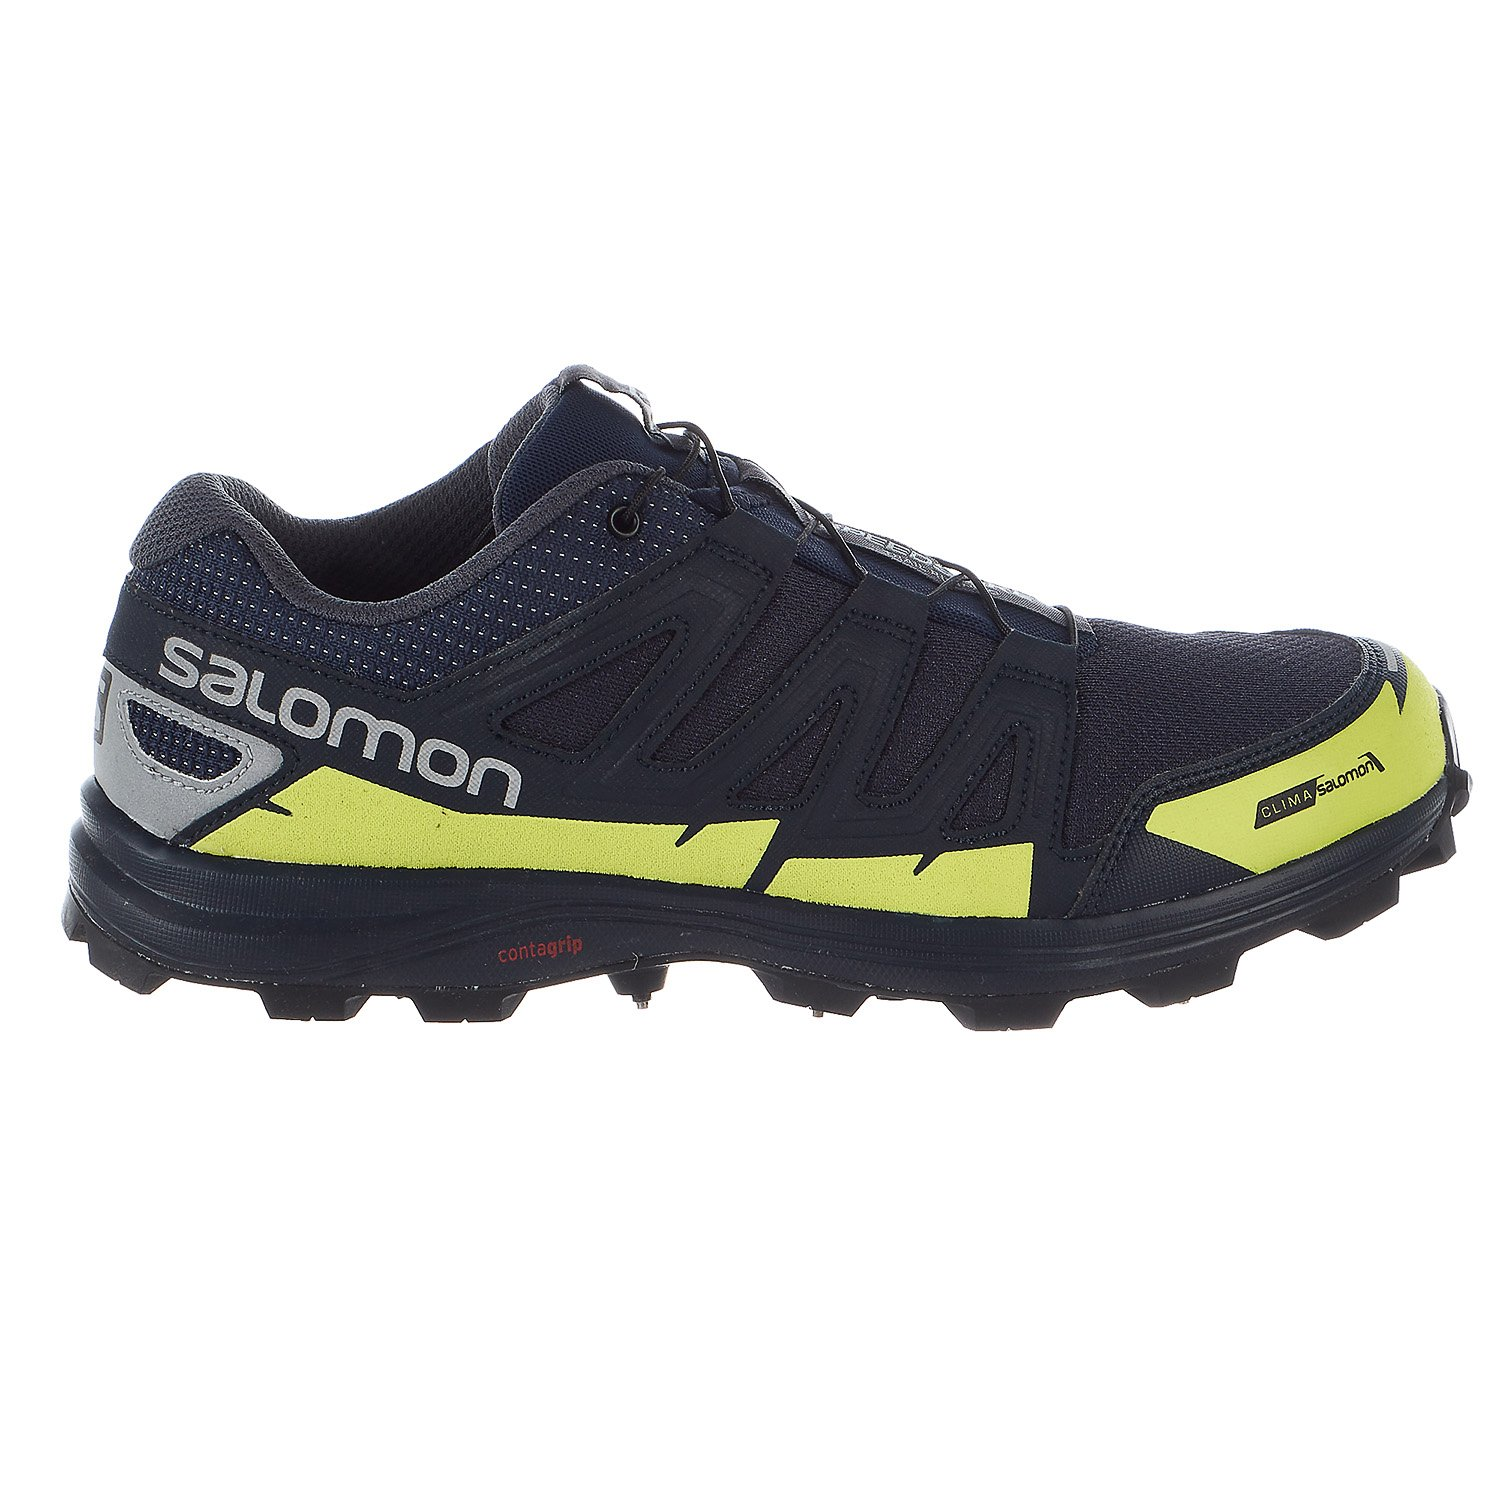 Salomon Speedspike CS Running Shoes - Navy Blazer, Reflective Silver, Lime Punch - Mens - 10